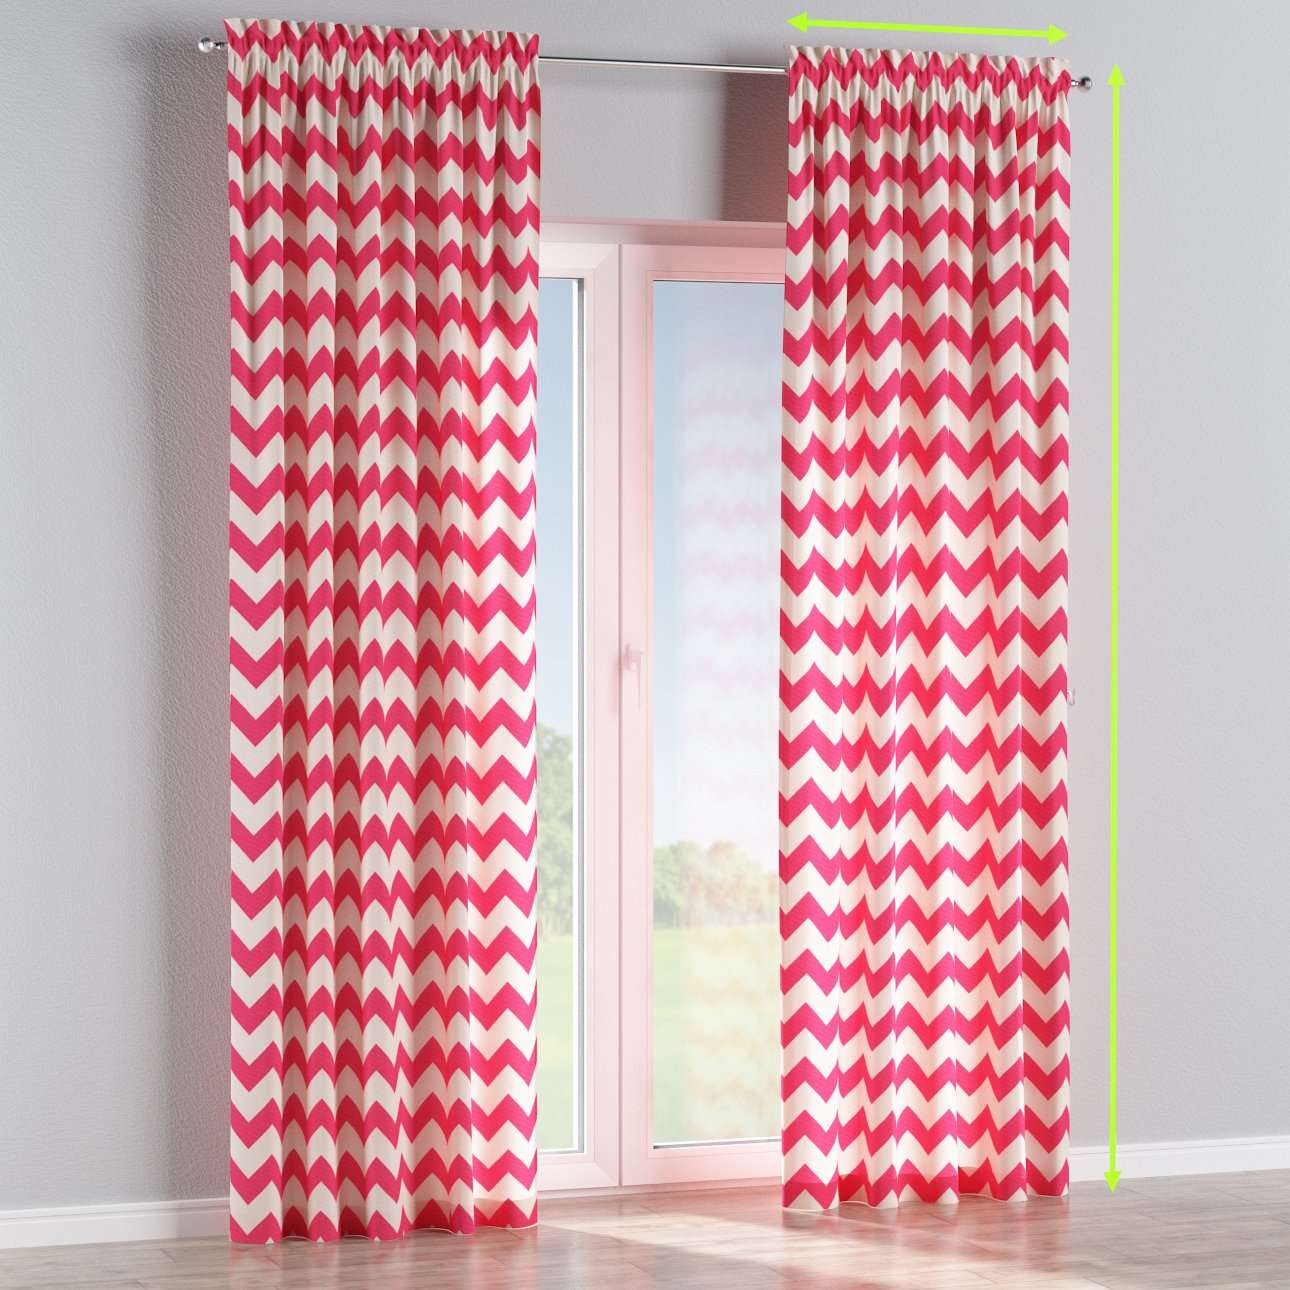 Slot and frill curtains in collection Comic Book & Geo Prints, fabric: 135-00